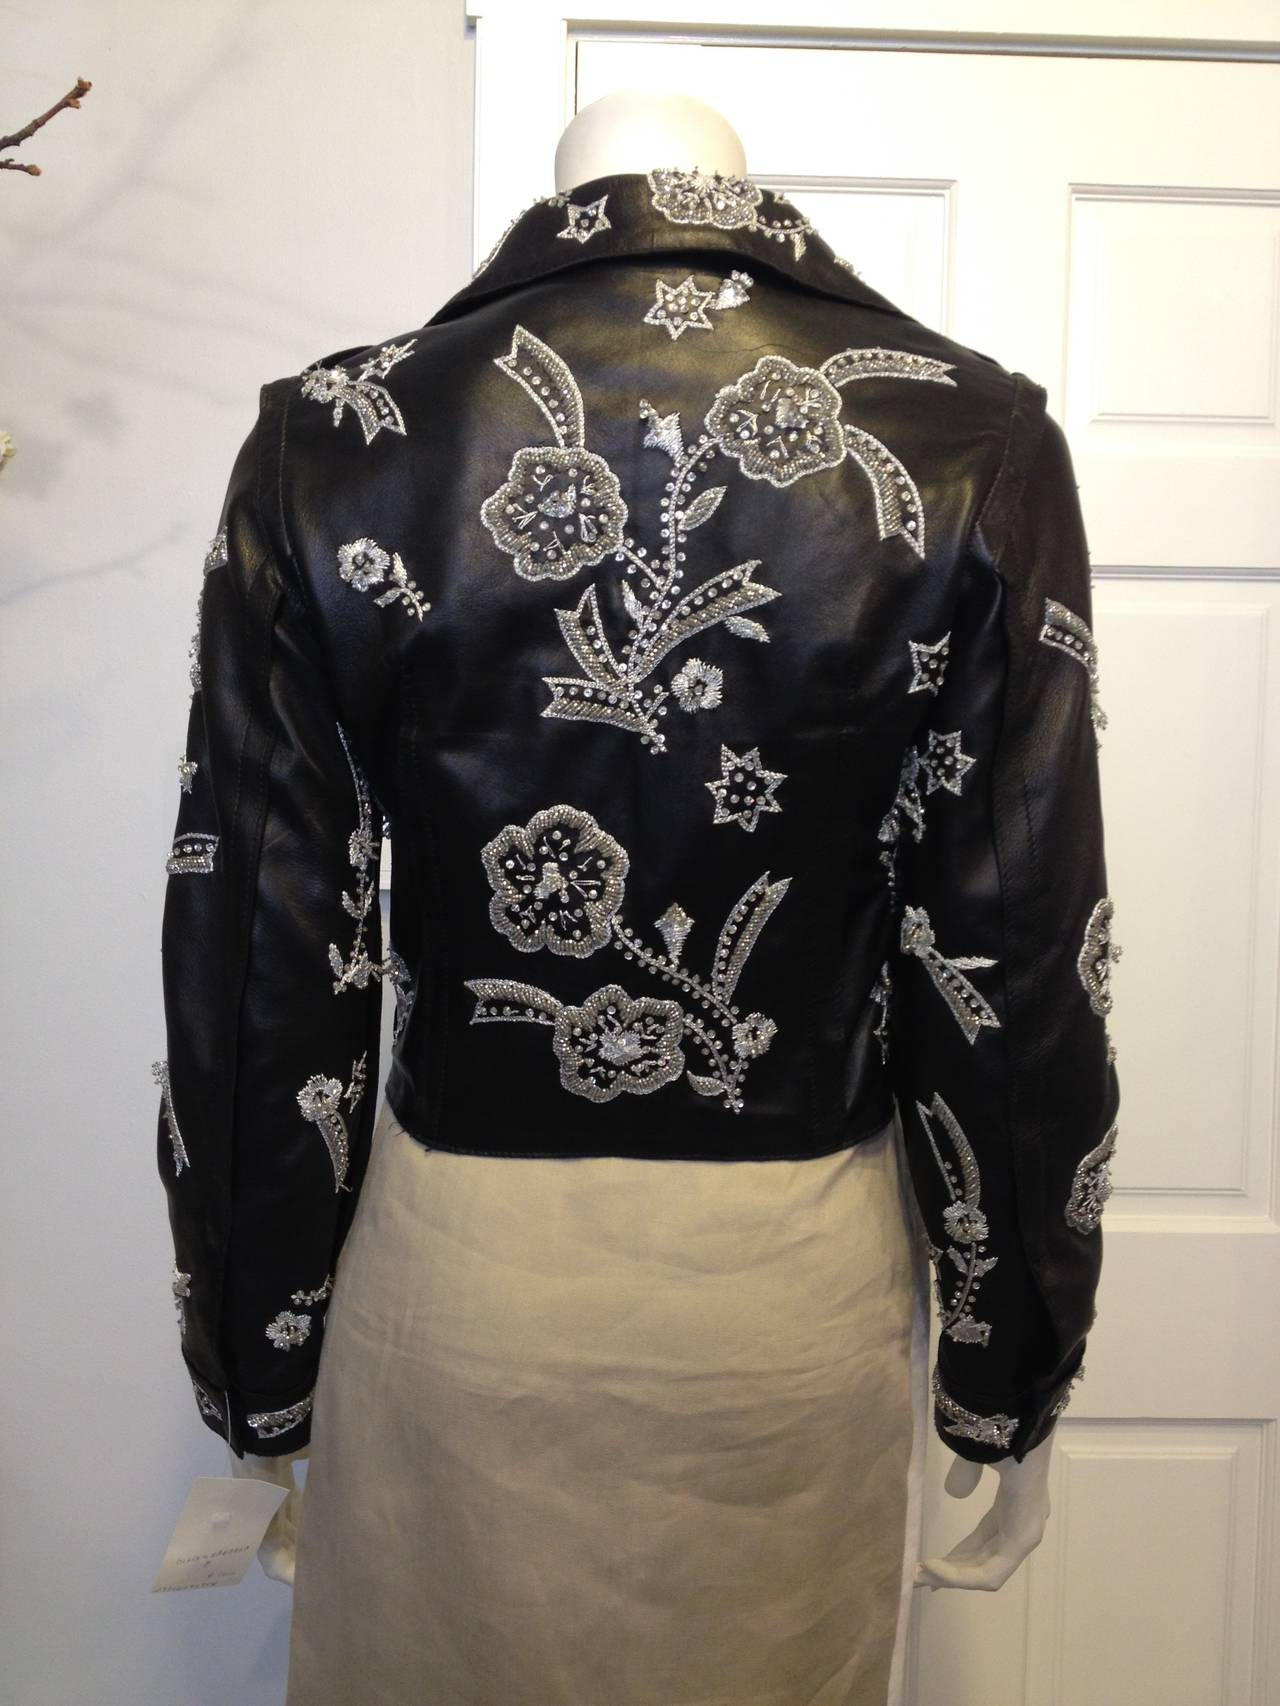 Dolce & Gabbana Black Leather Jacket with Silver Beading 3